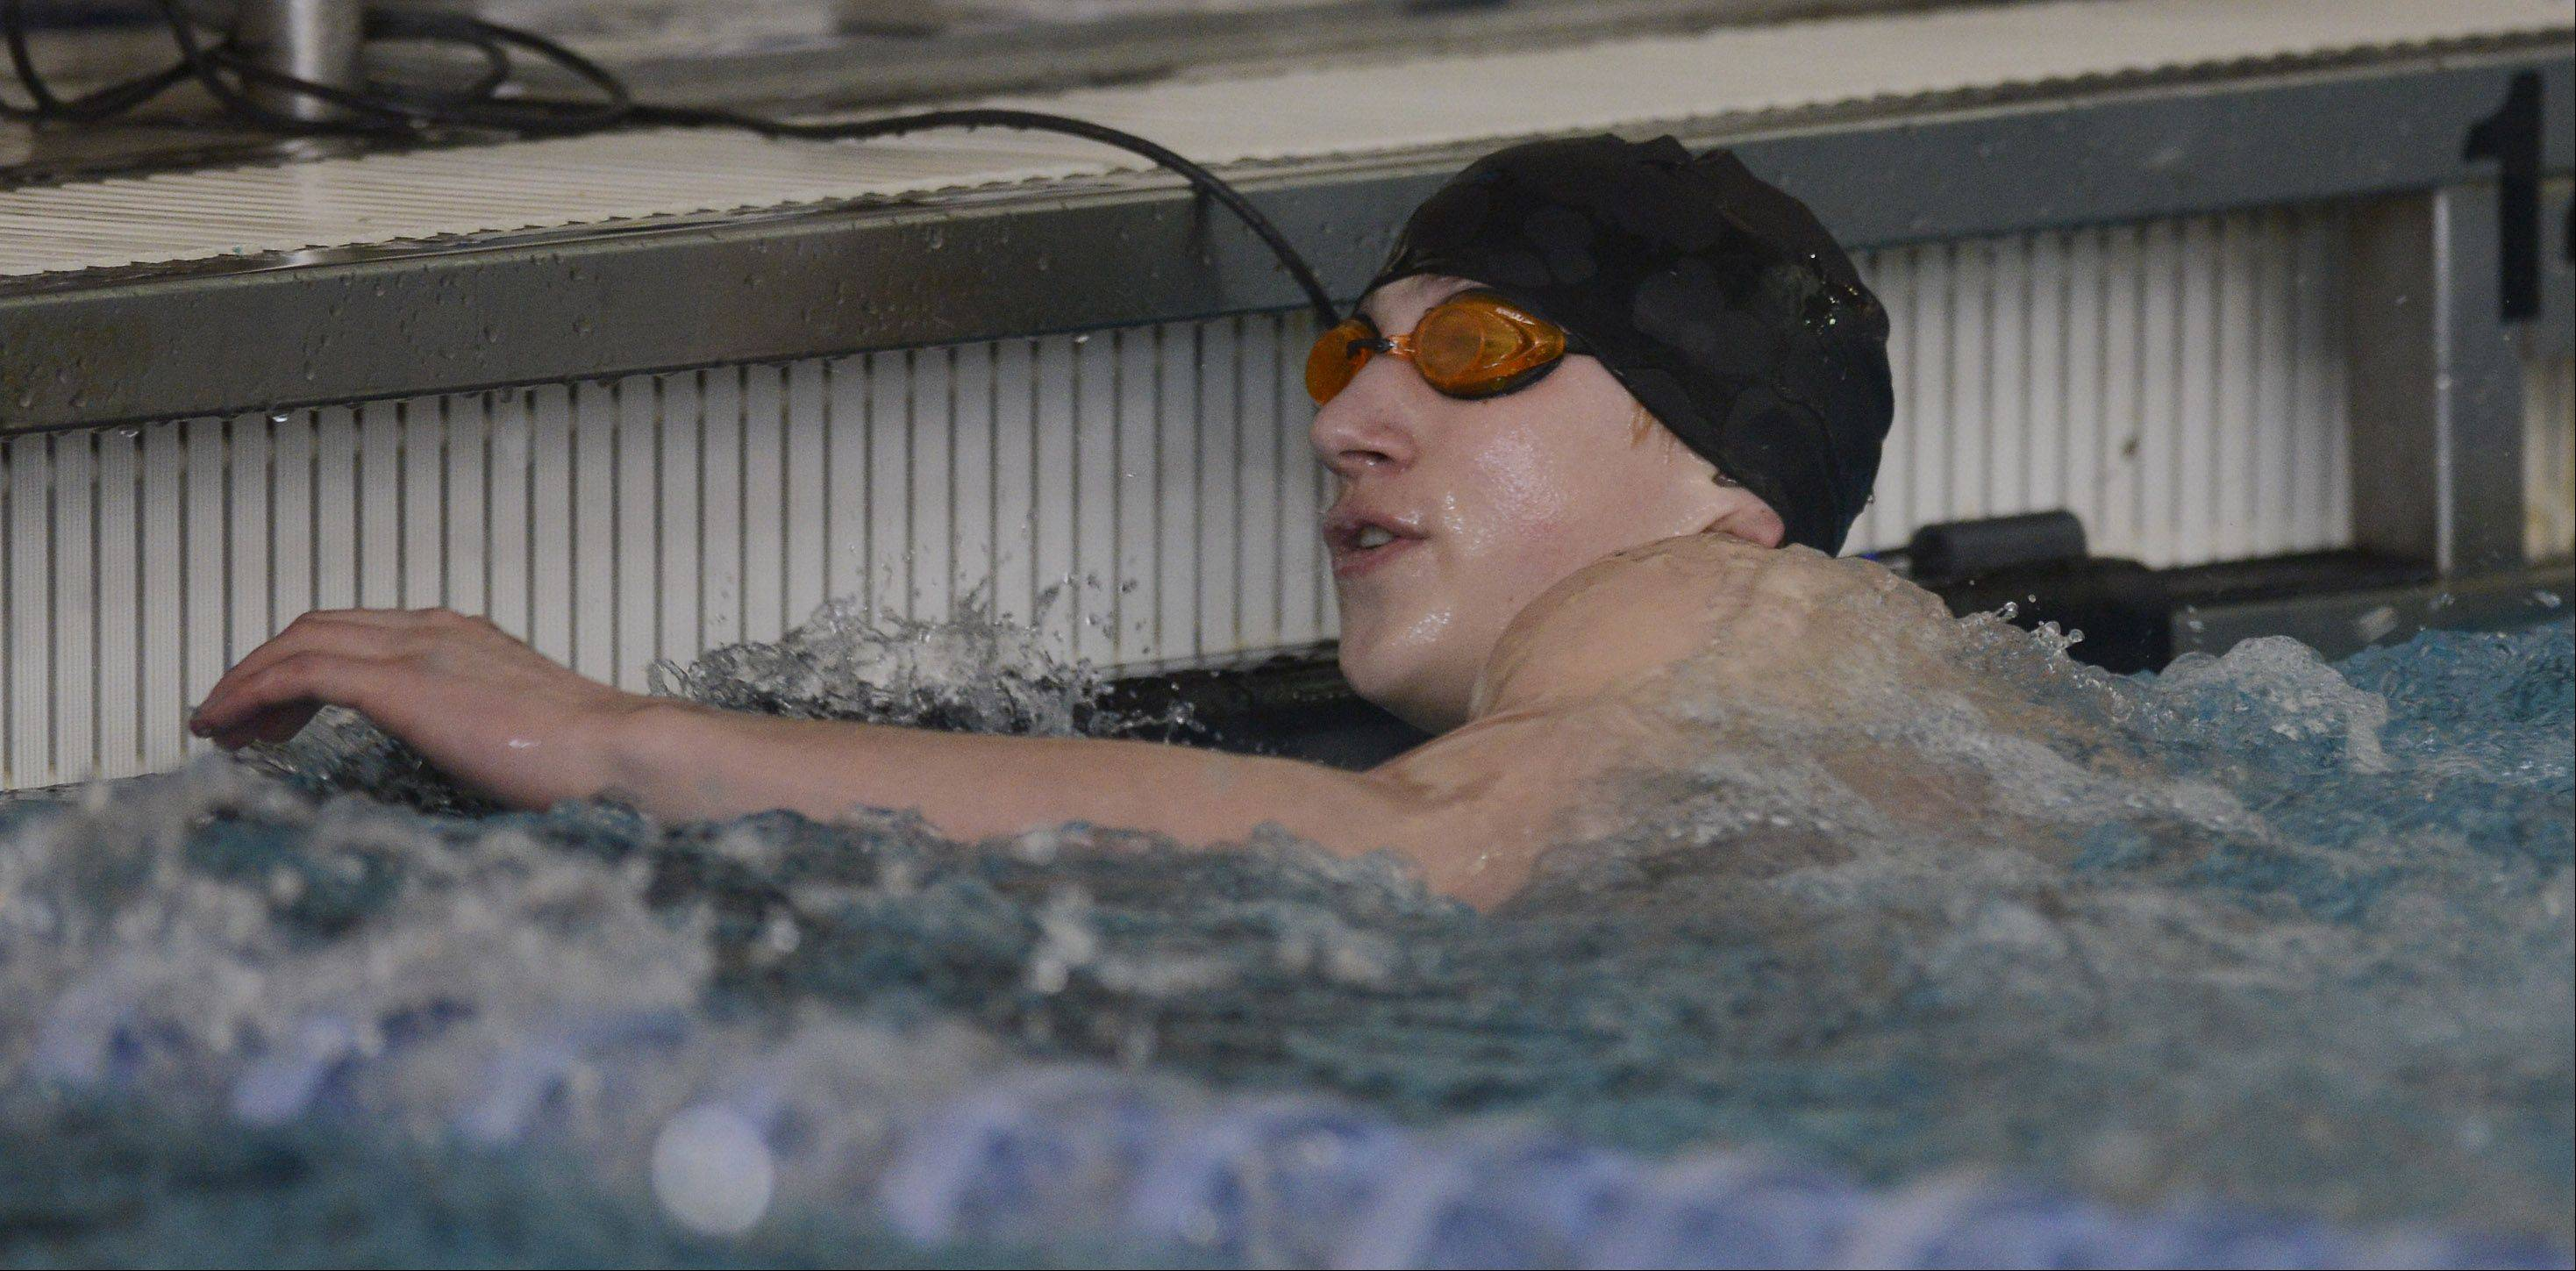 Connor Black of Mundelein checks his time after the 50-yard freestyle during the North Suburban Conference boys swim meet at Lake Forest High School on Saturday.